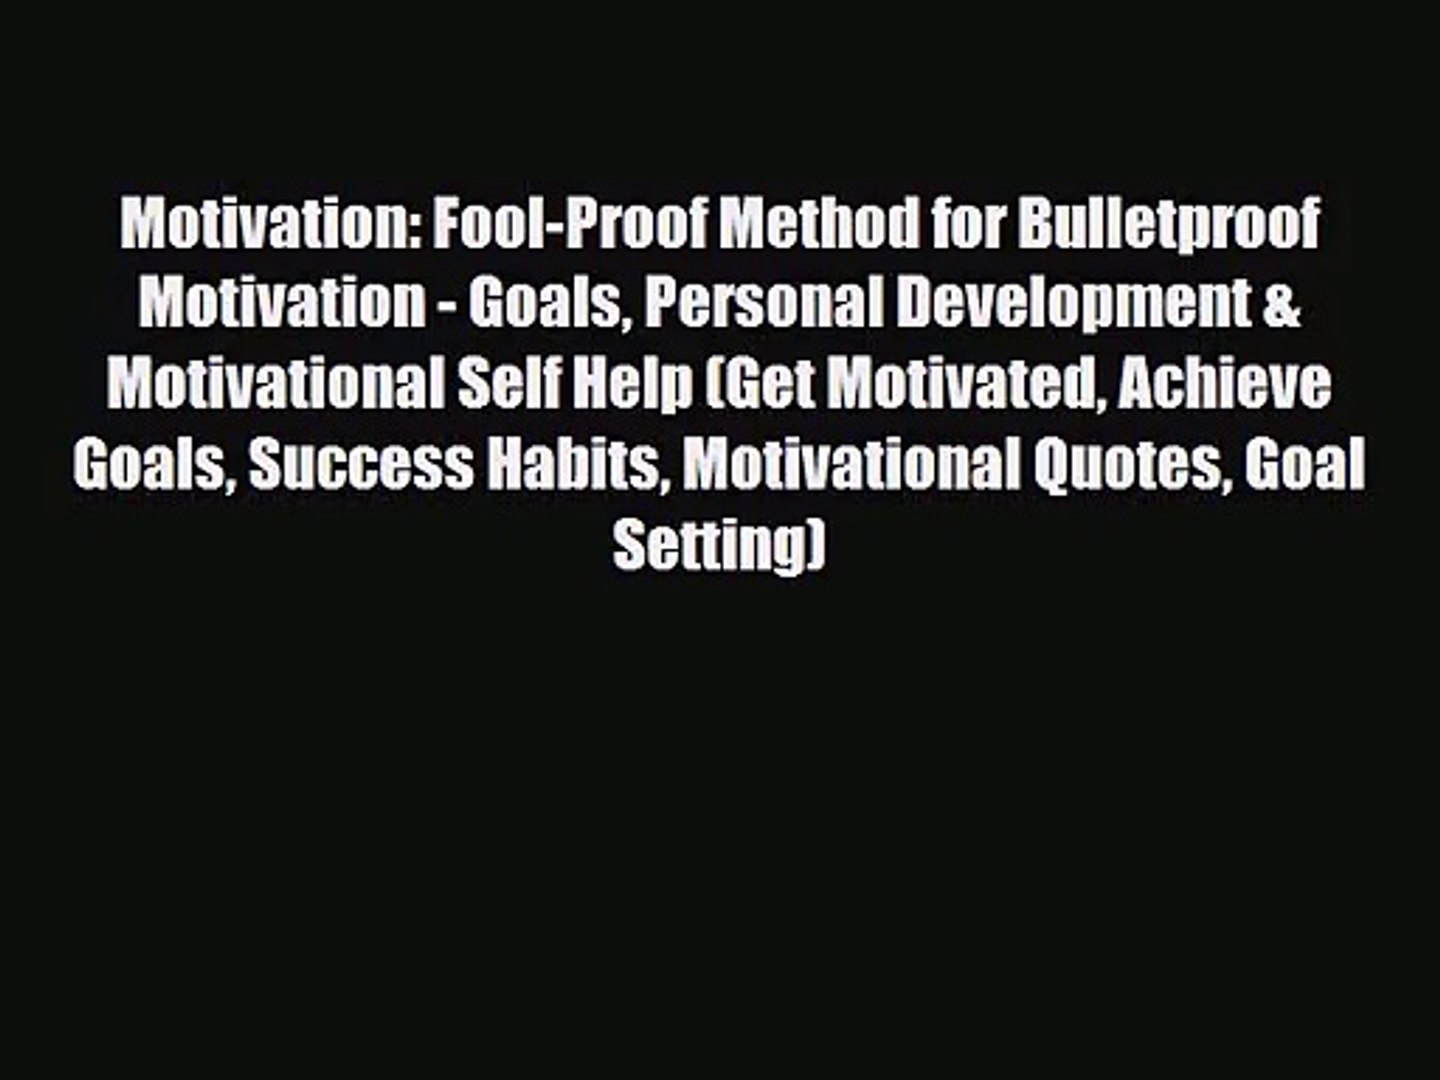 Motivation: Fool-Proof Method for Bulletproof Motivation - Goals Personal Development & Motivati